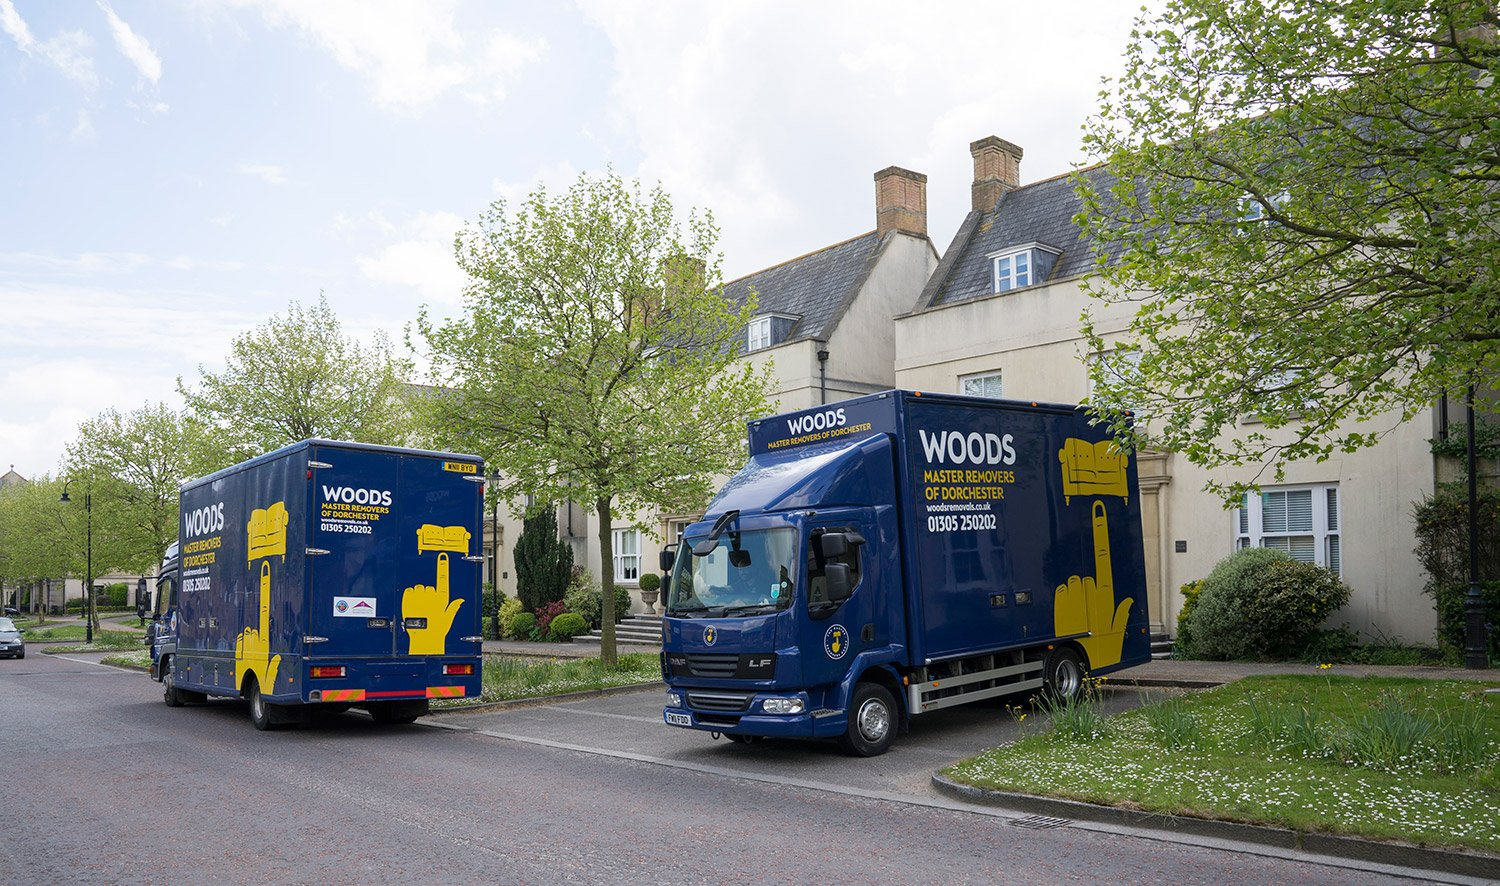 Are You Moving to Dorset from London? We Can Help